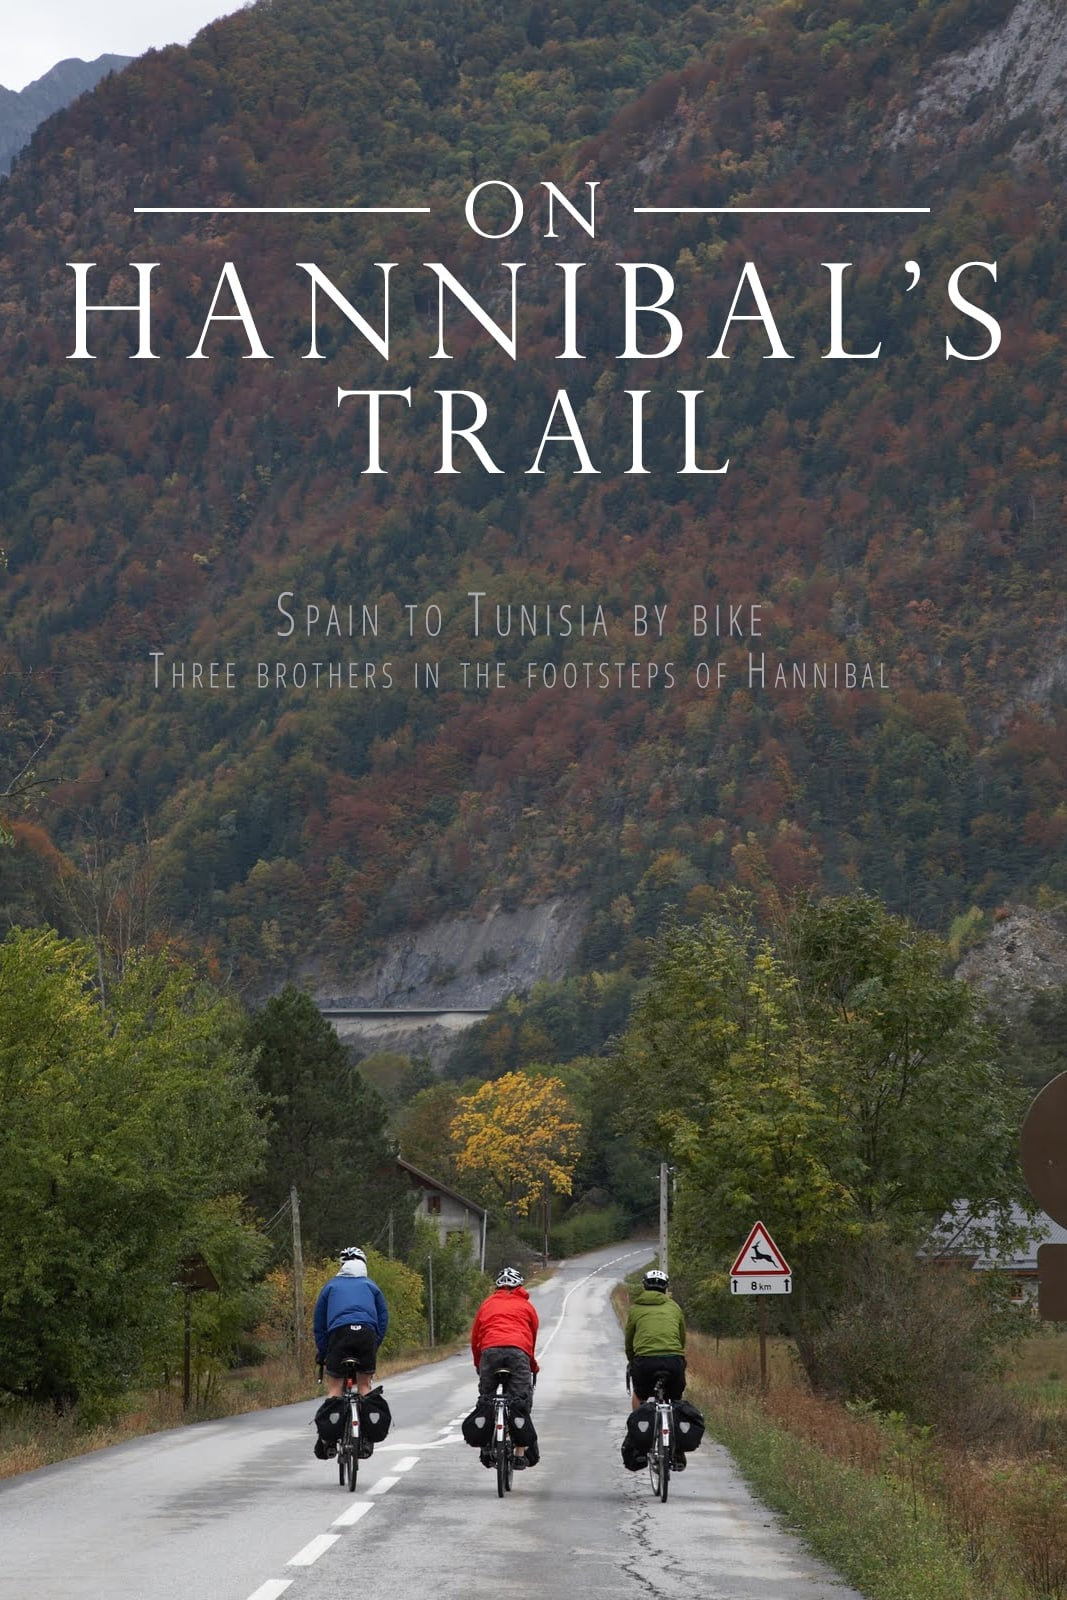 On Hannibal's Trail (2010)